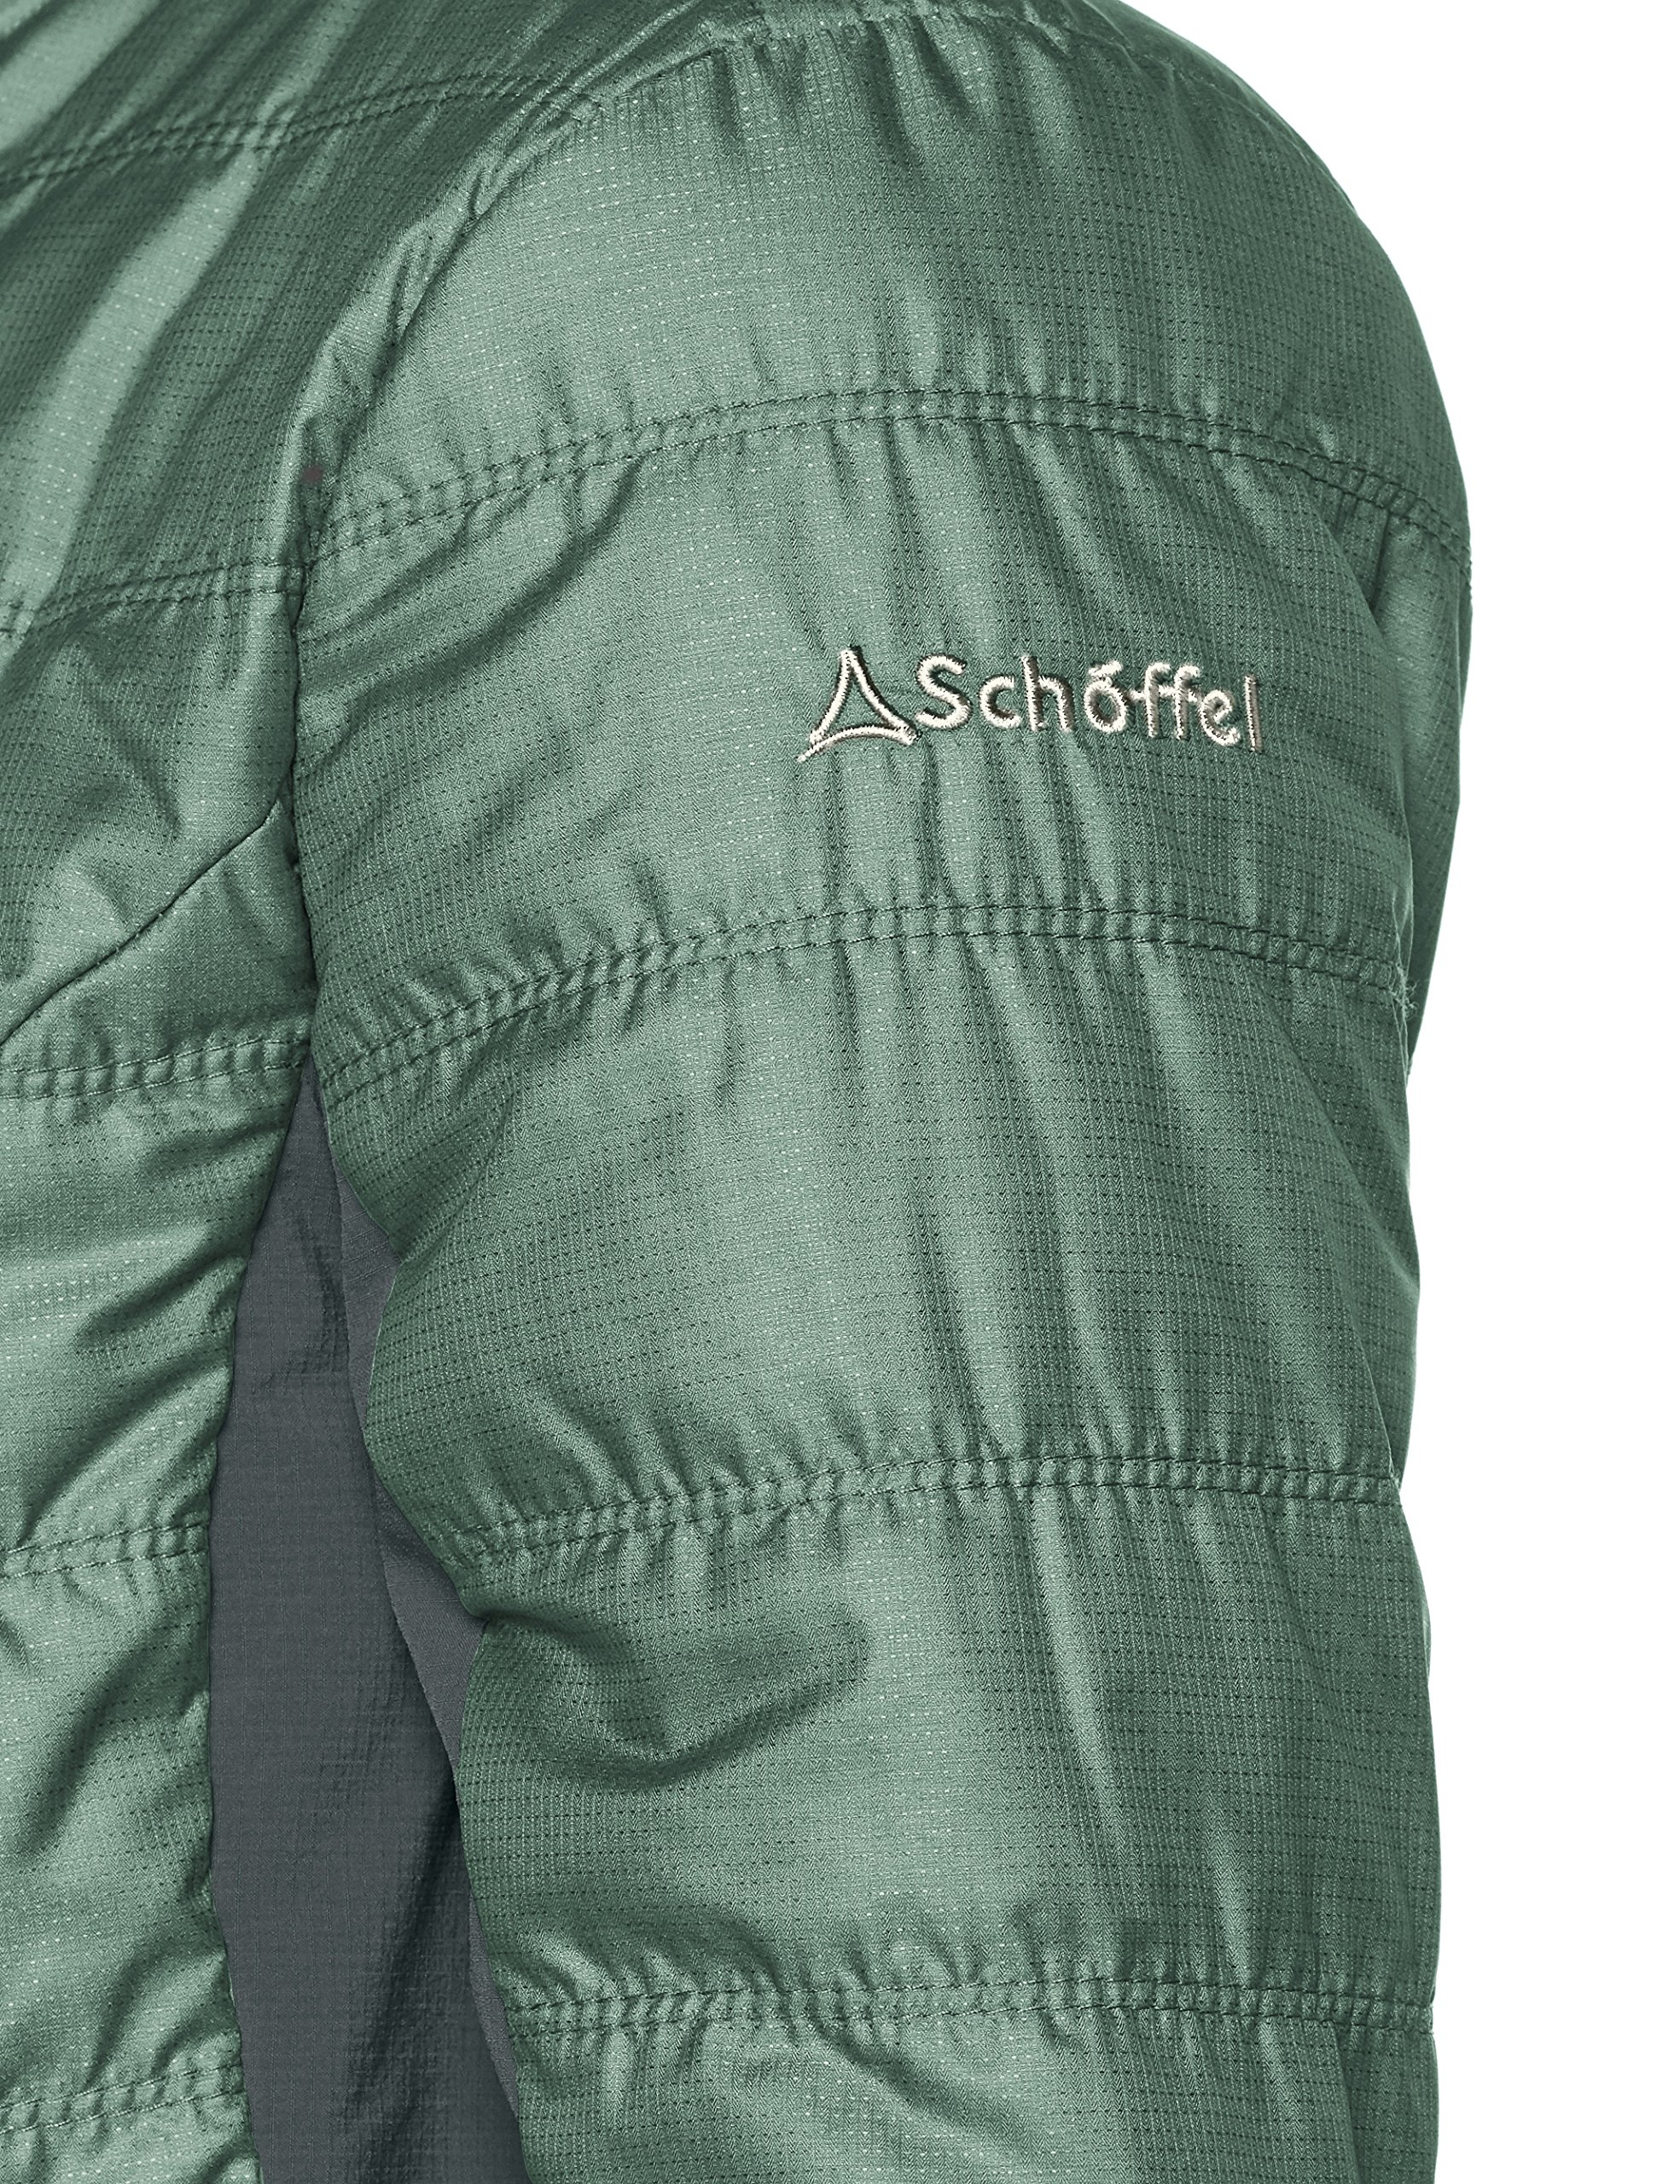 A189UKSzjhL - Schöffel Women's Ventloft Jacket Lahore1 Down / thermal jacket.